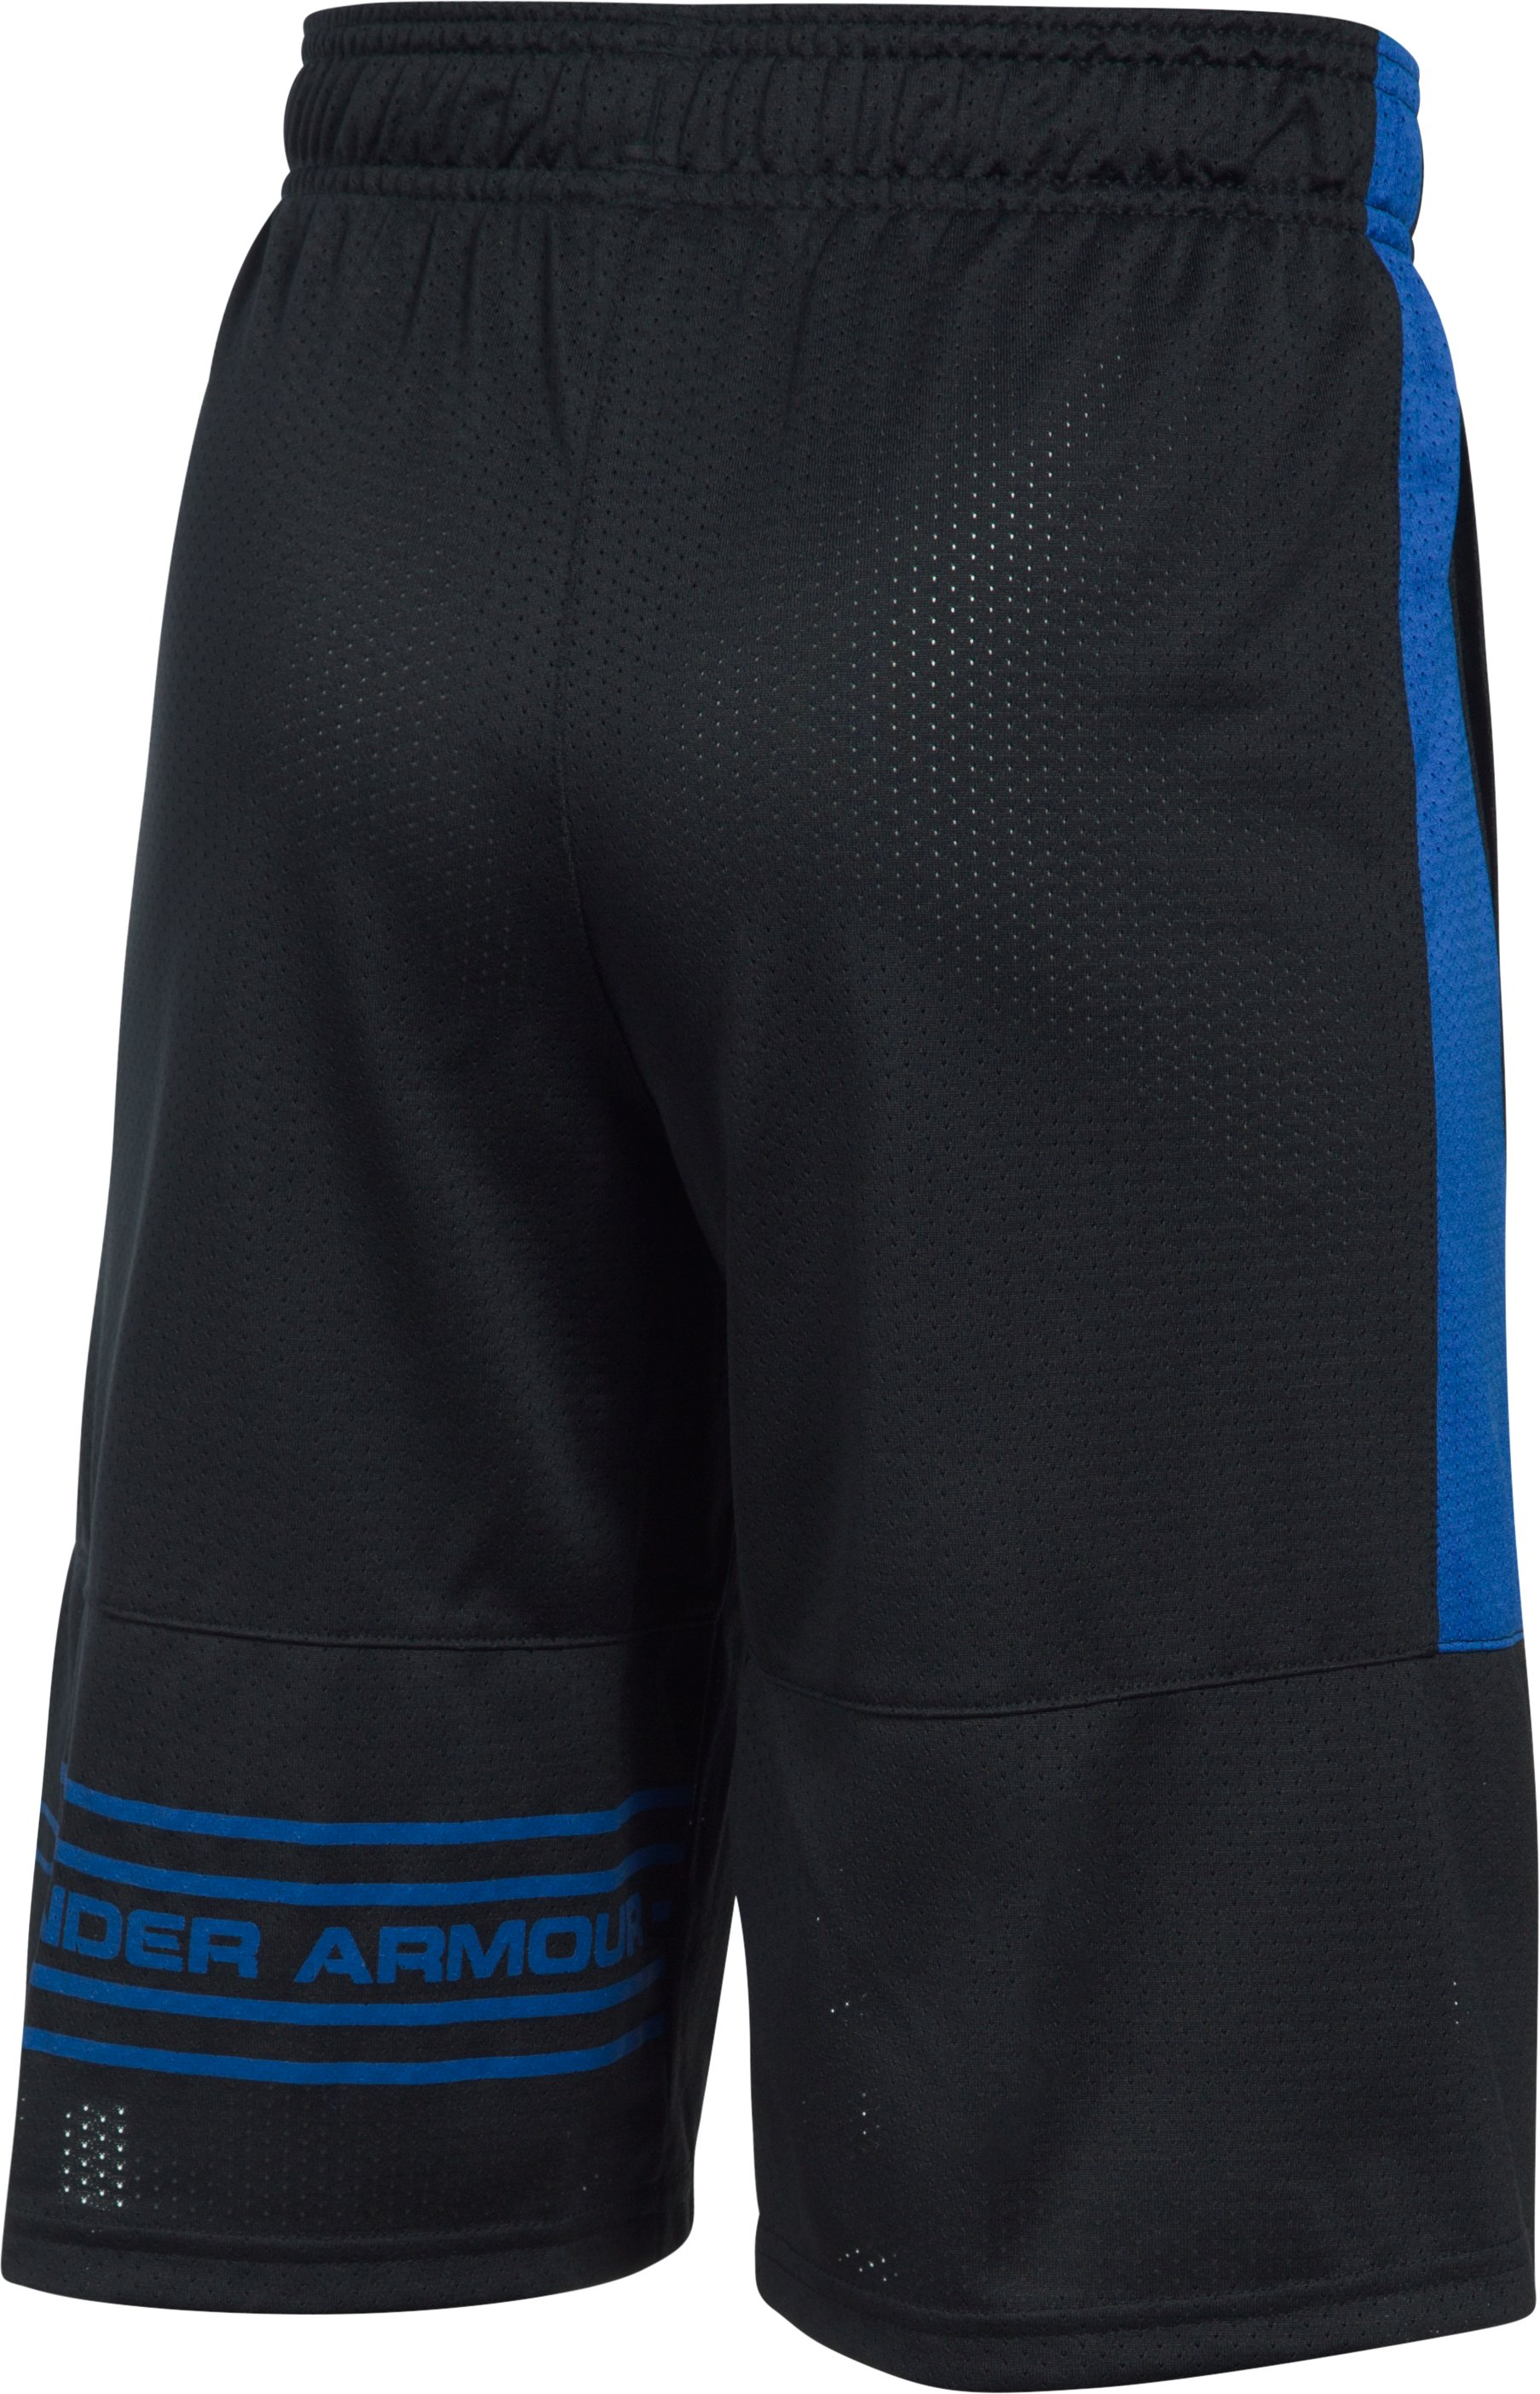 Boys' UA Train To Game Shorts, Black , undefined